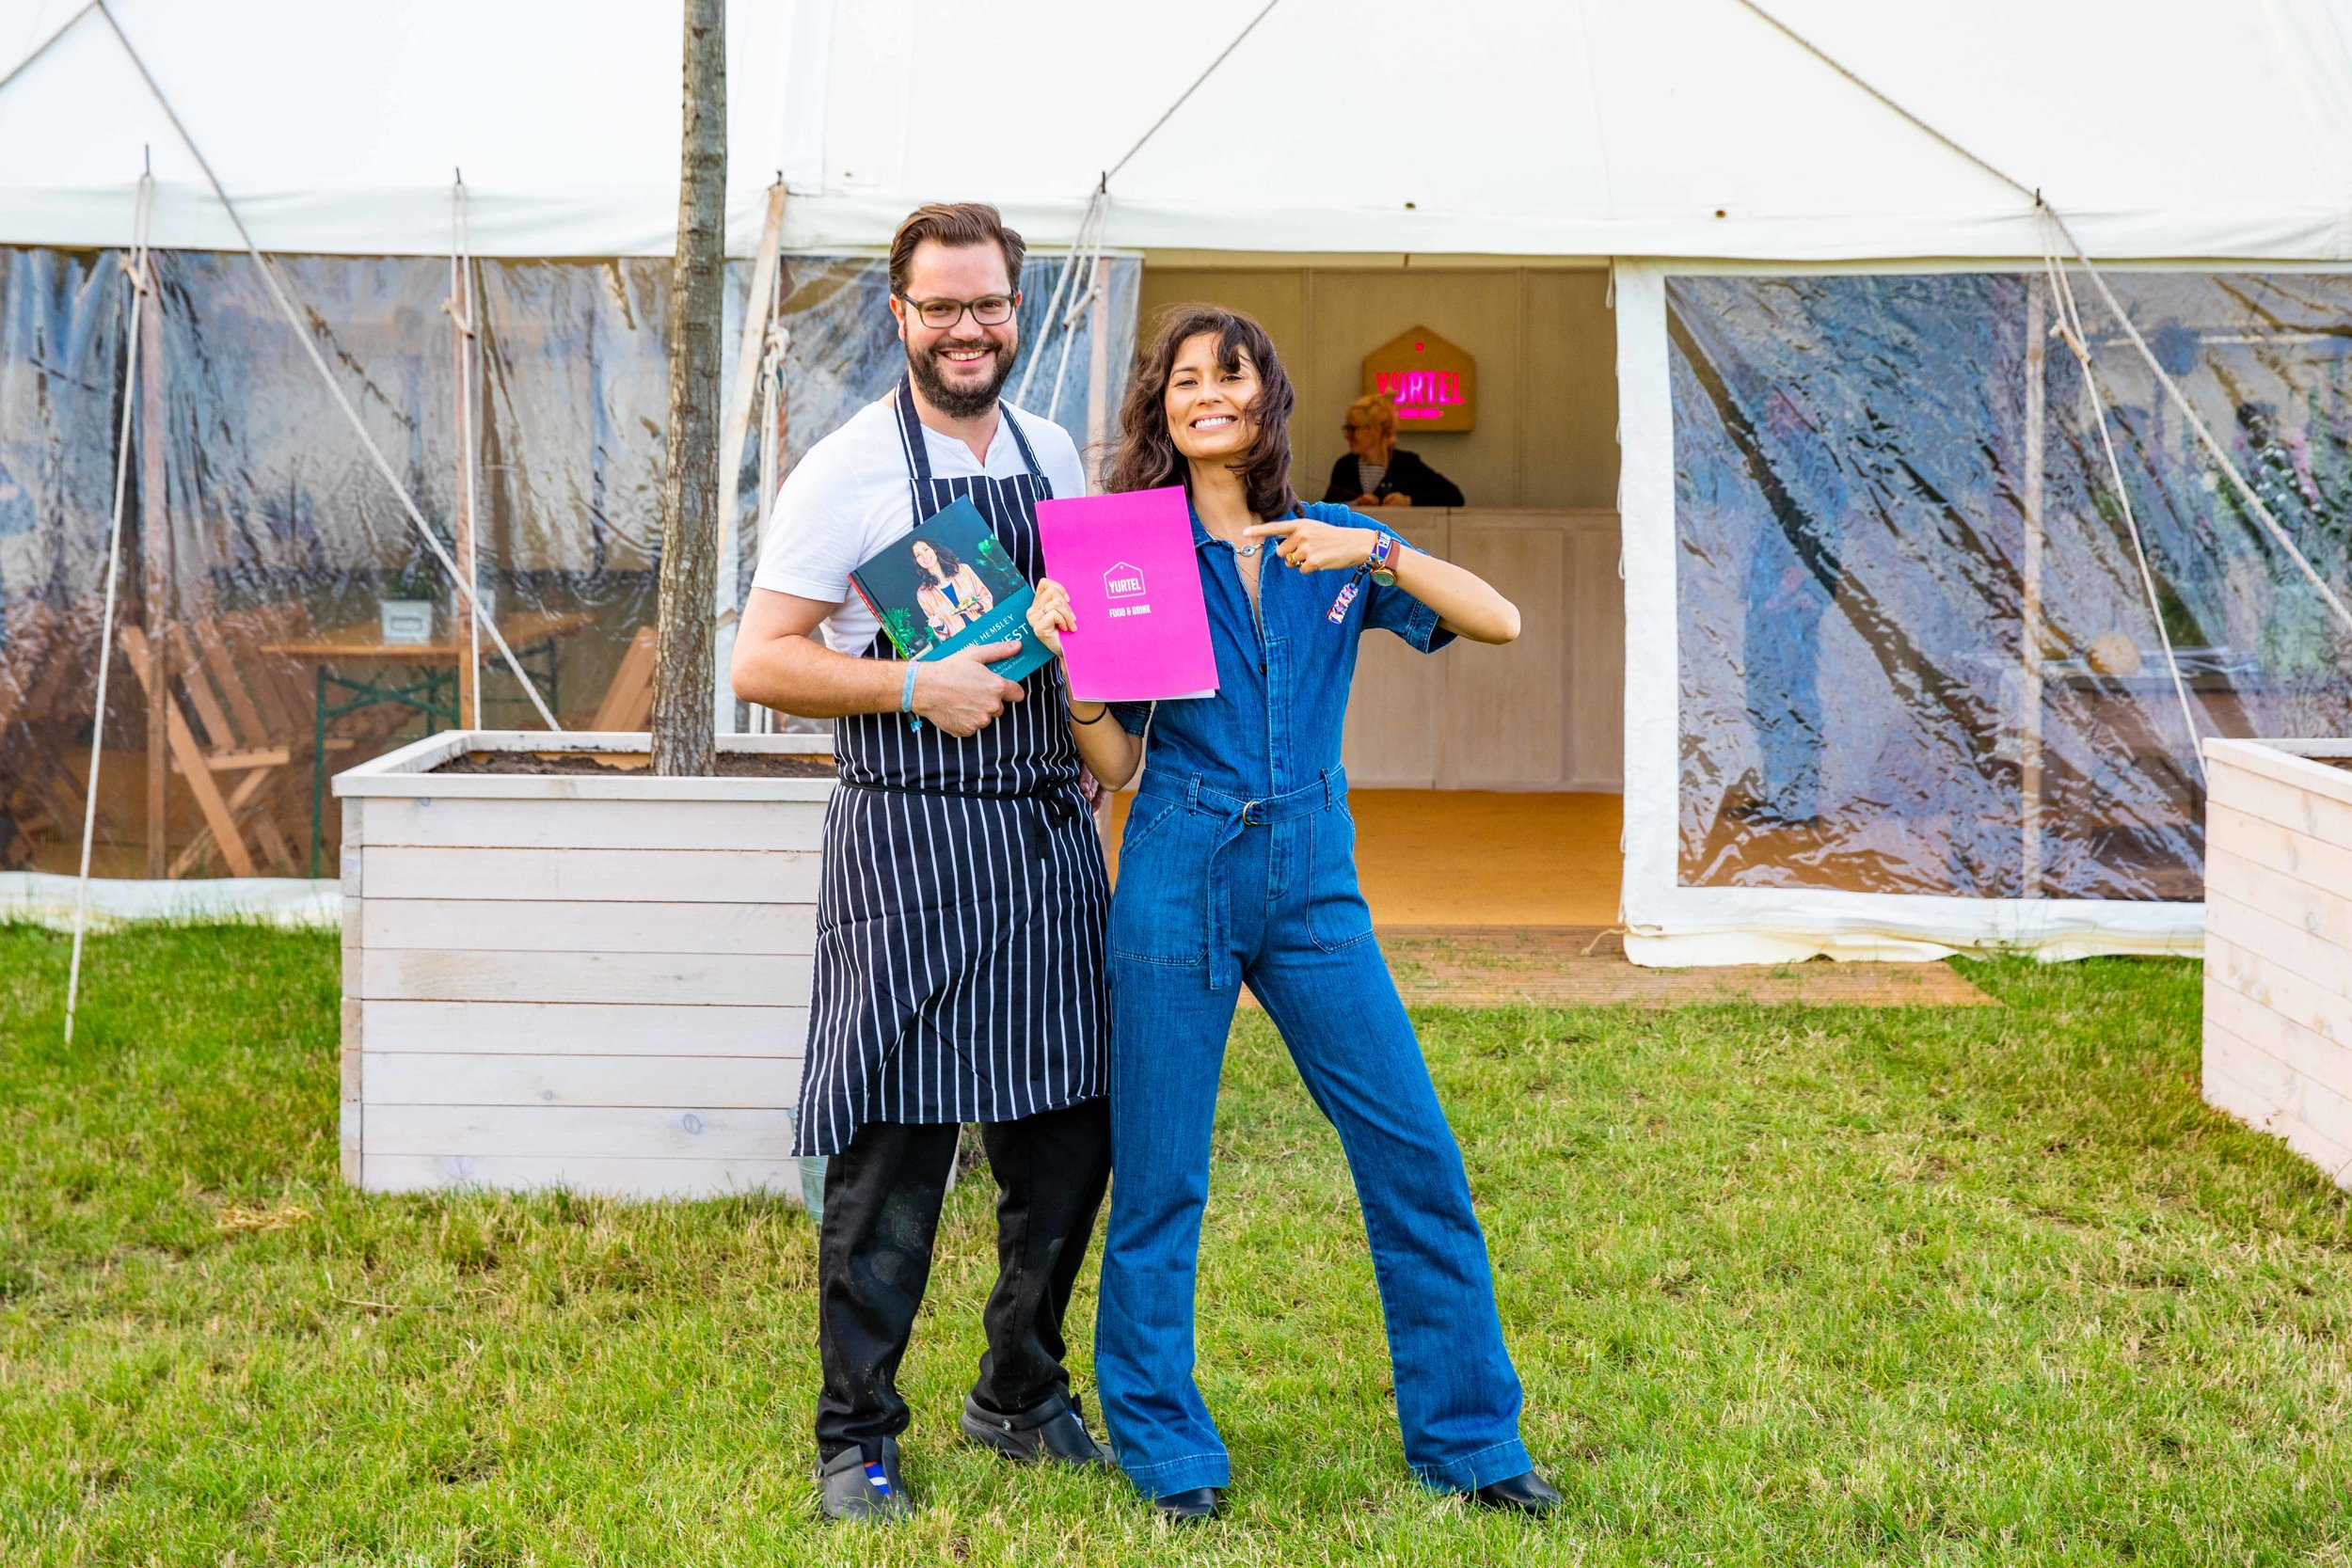 JasmineHemsley_EastByWest_Glastonbury_NickHopperPhotography-0725.JPG